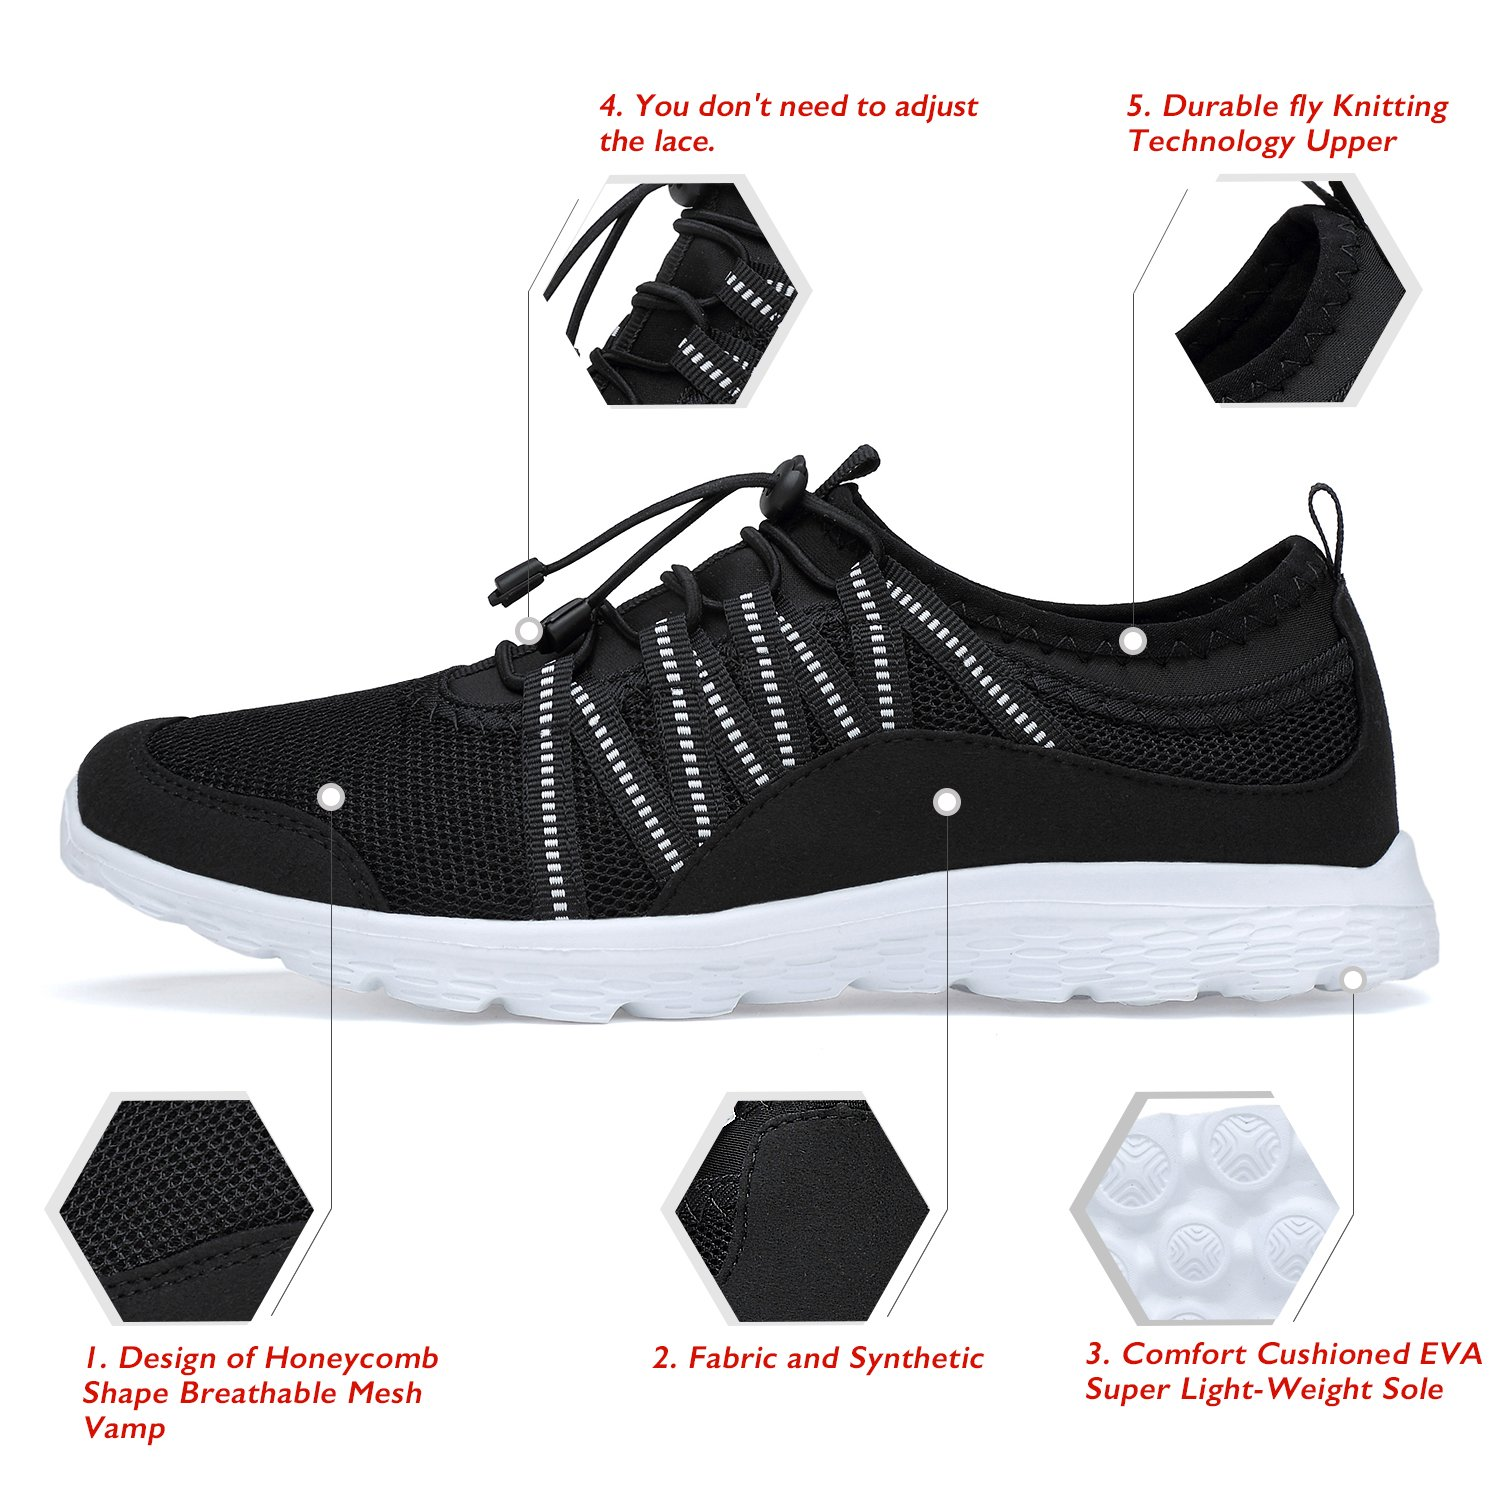 Men's Lightweight Walking Shoes Breathable Mesh Soft Sole for Casual Walk Outdoor Workout Travel Work by Belilent (Image #2)